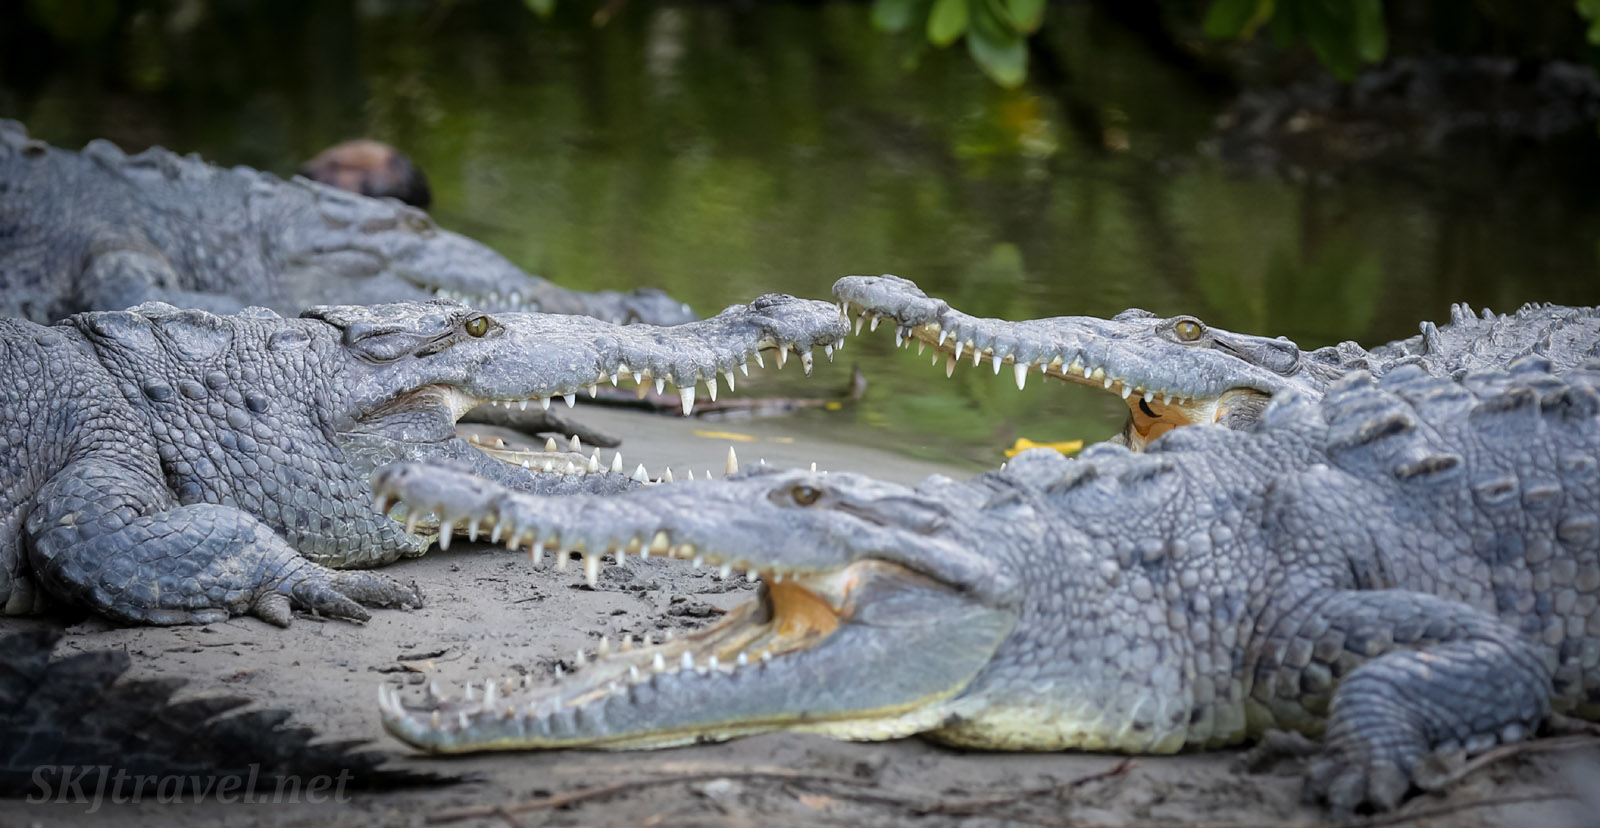 American crocodiles with mouths open, Popoyote Lagoon, Playa Linda, Ixtapa Mexico.